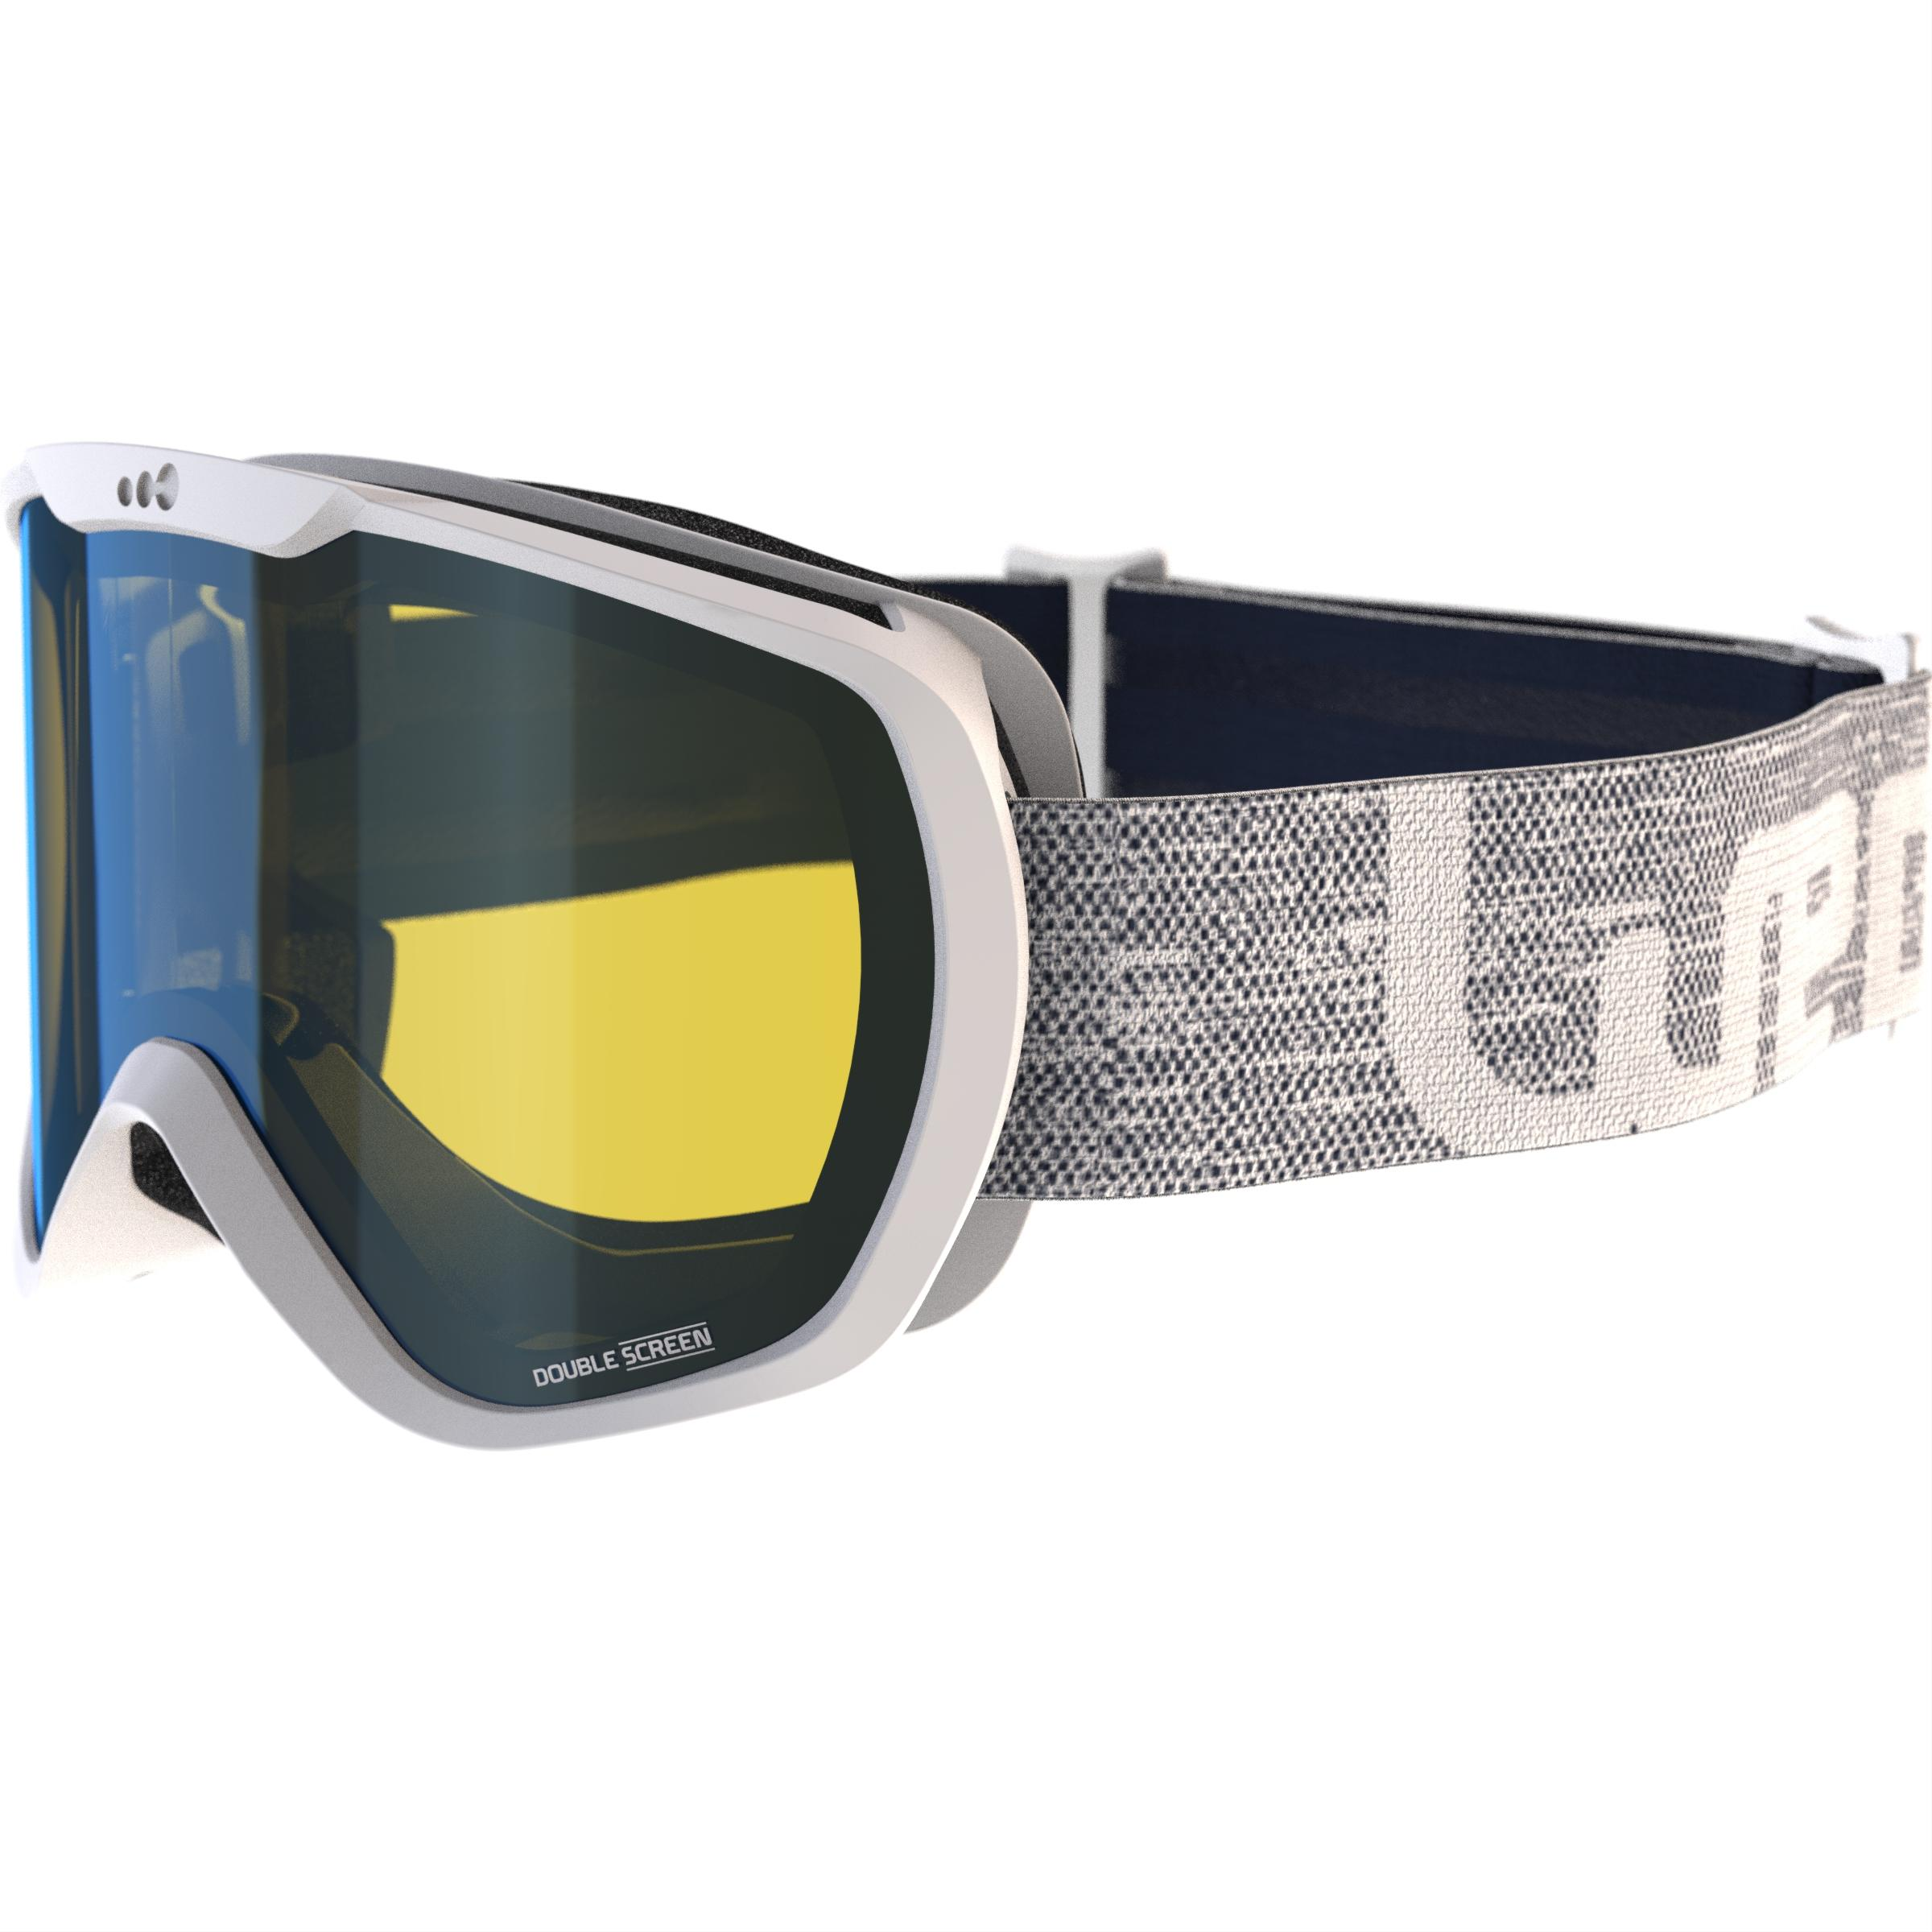 G 500 Adult and Junior Bad Weather Ski and Snowboard Goggles - White